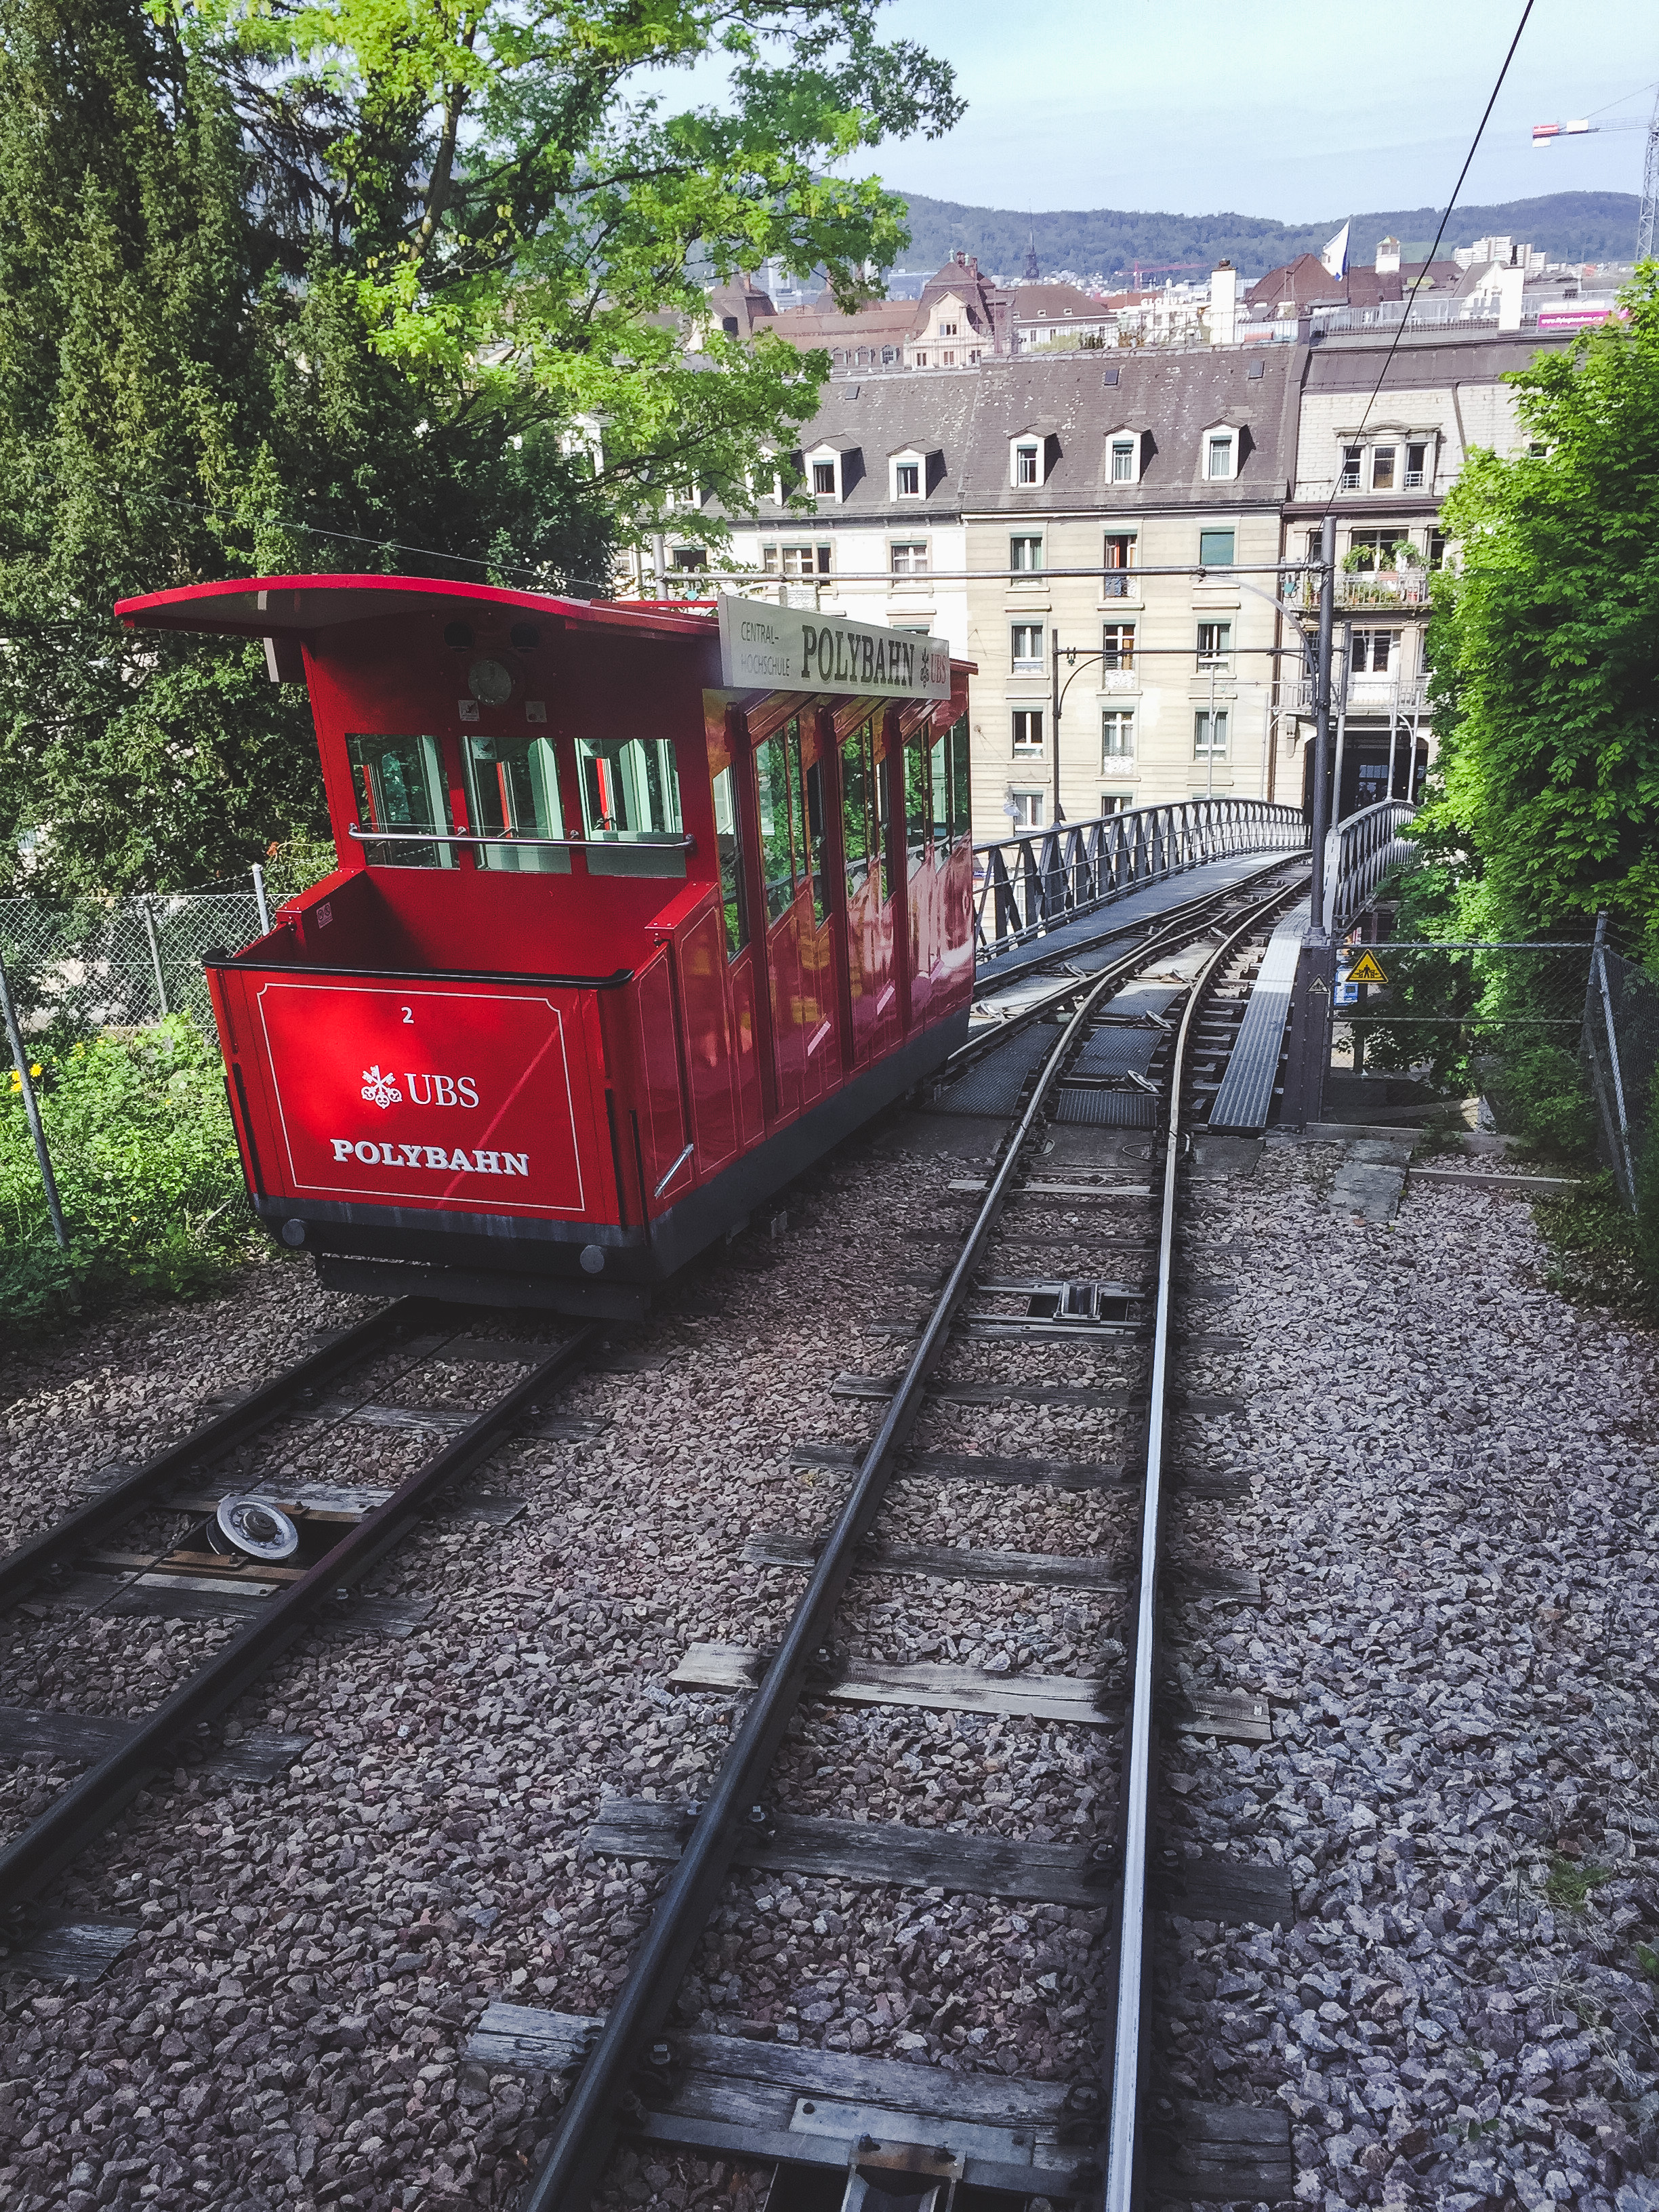 The UBS Polybahn is a funicular railway right in the city of Zürich, Switzerland